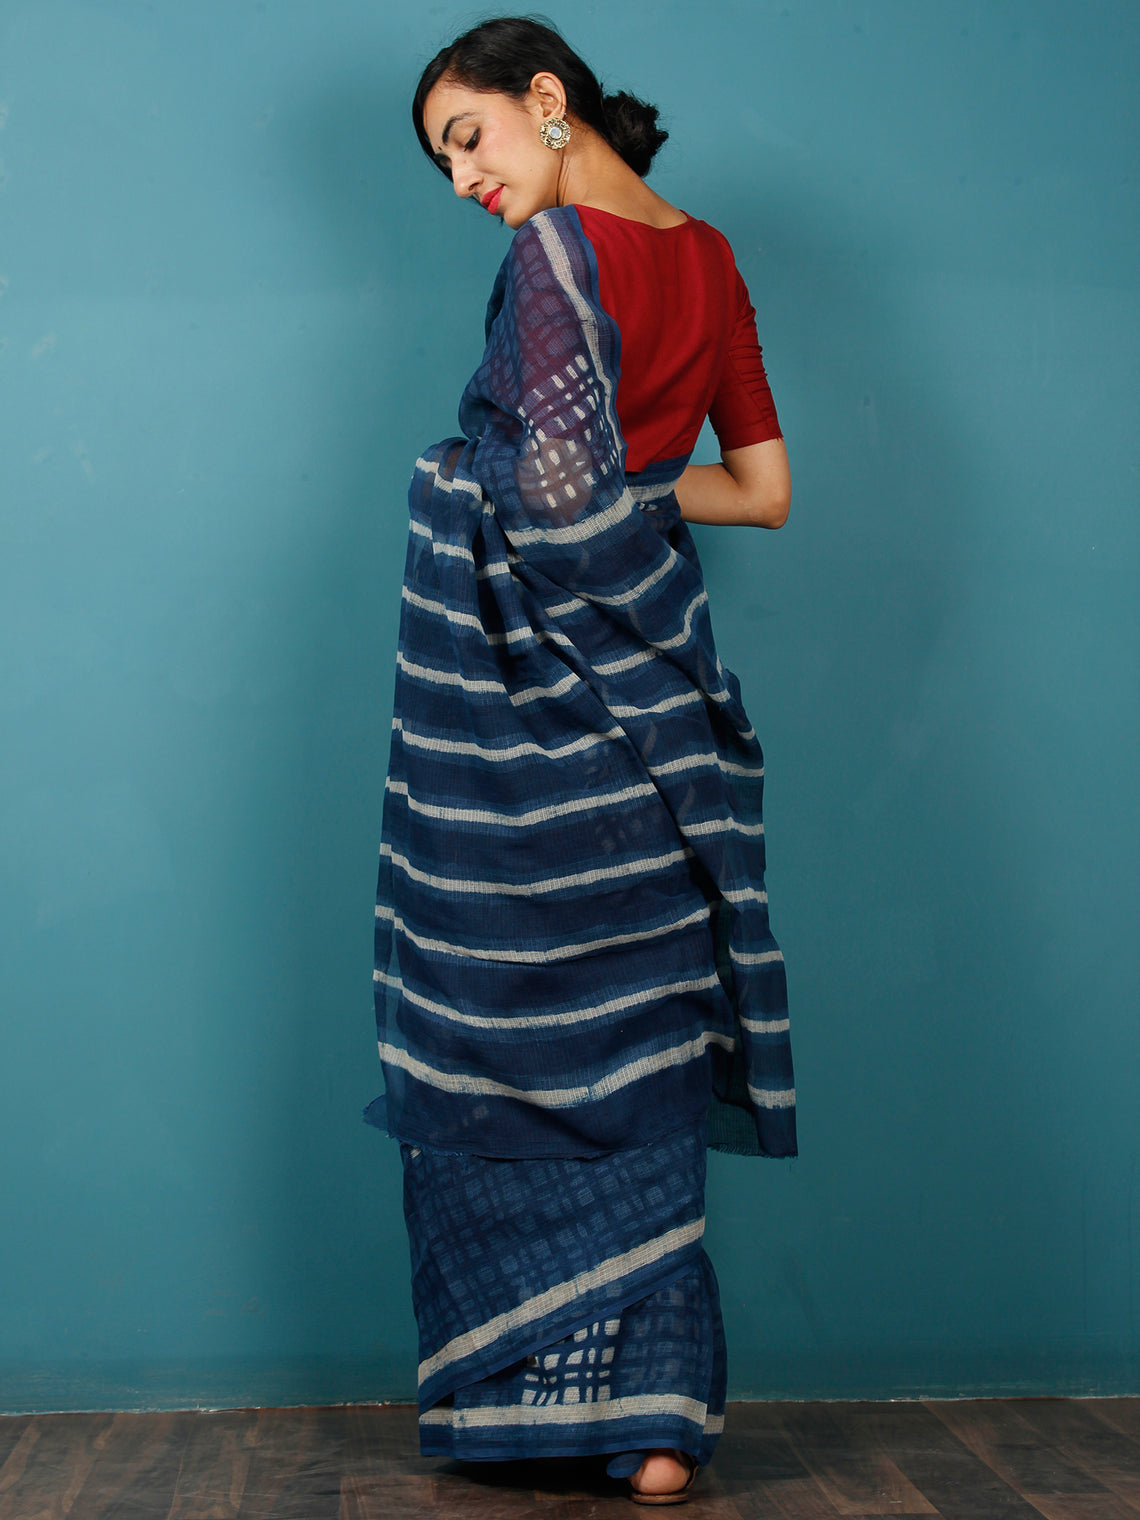 Indigo Ivory Hand Block Printed Kota Doria Saree in Natural Colors - S031702826